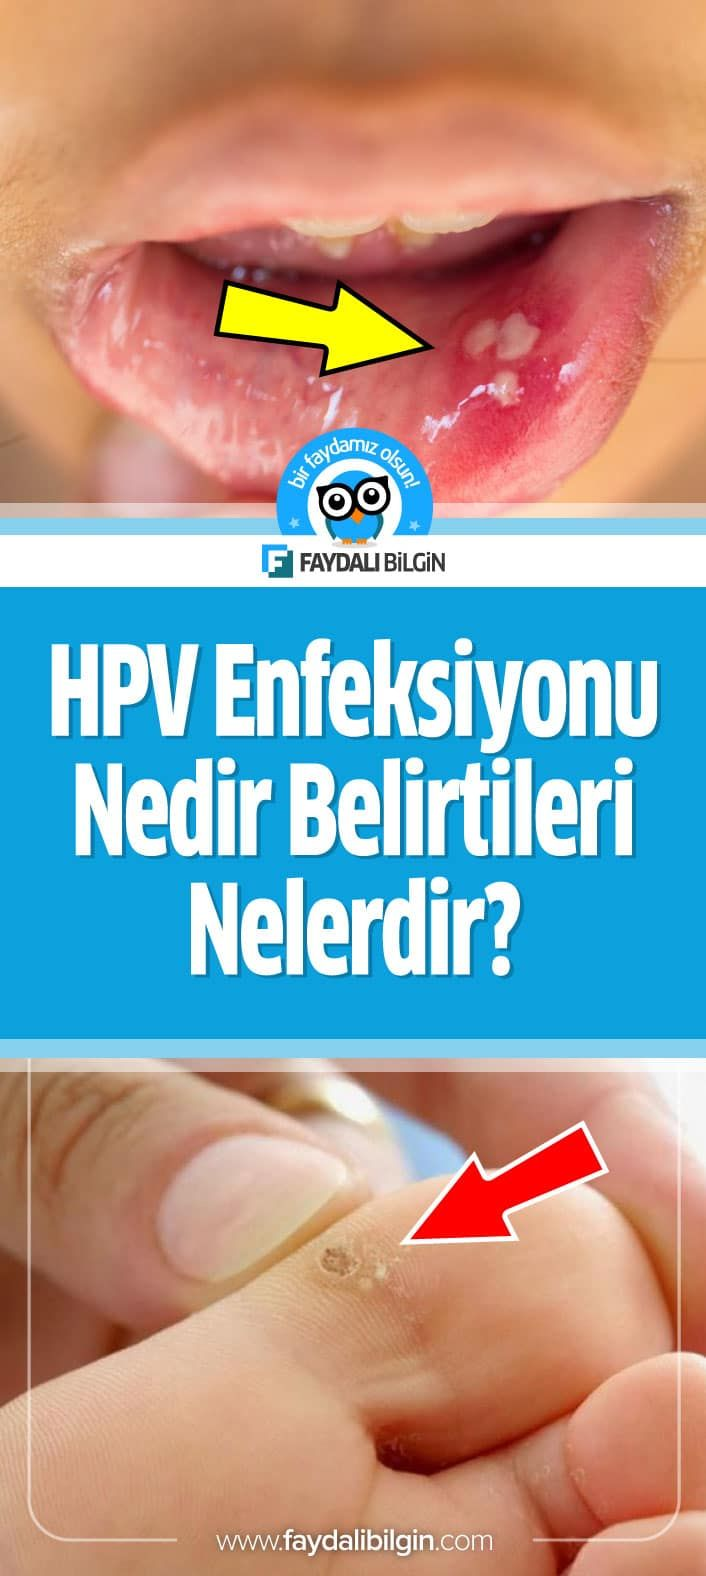 cheloo o zi ca oricare alta which hpv strains cause cervical cancer